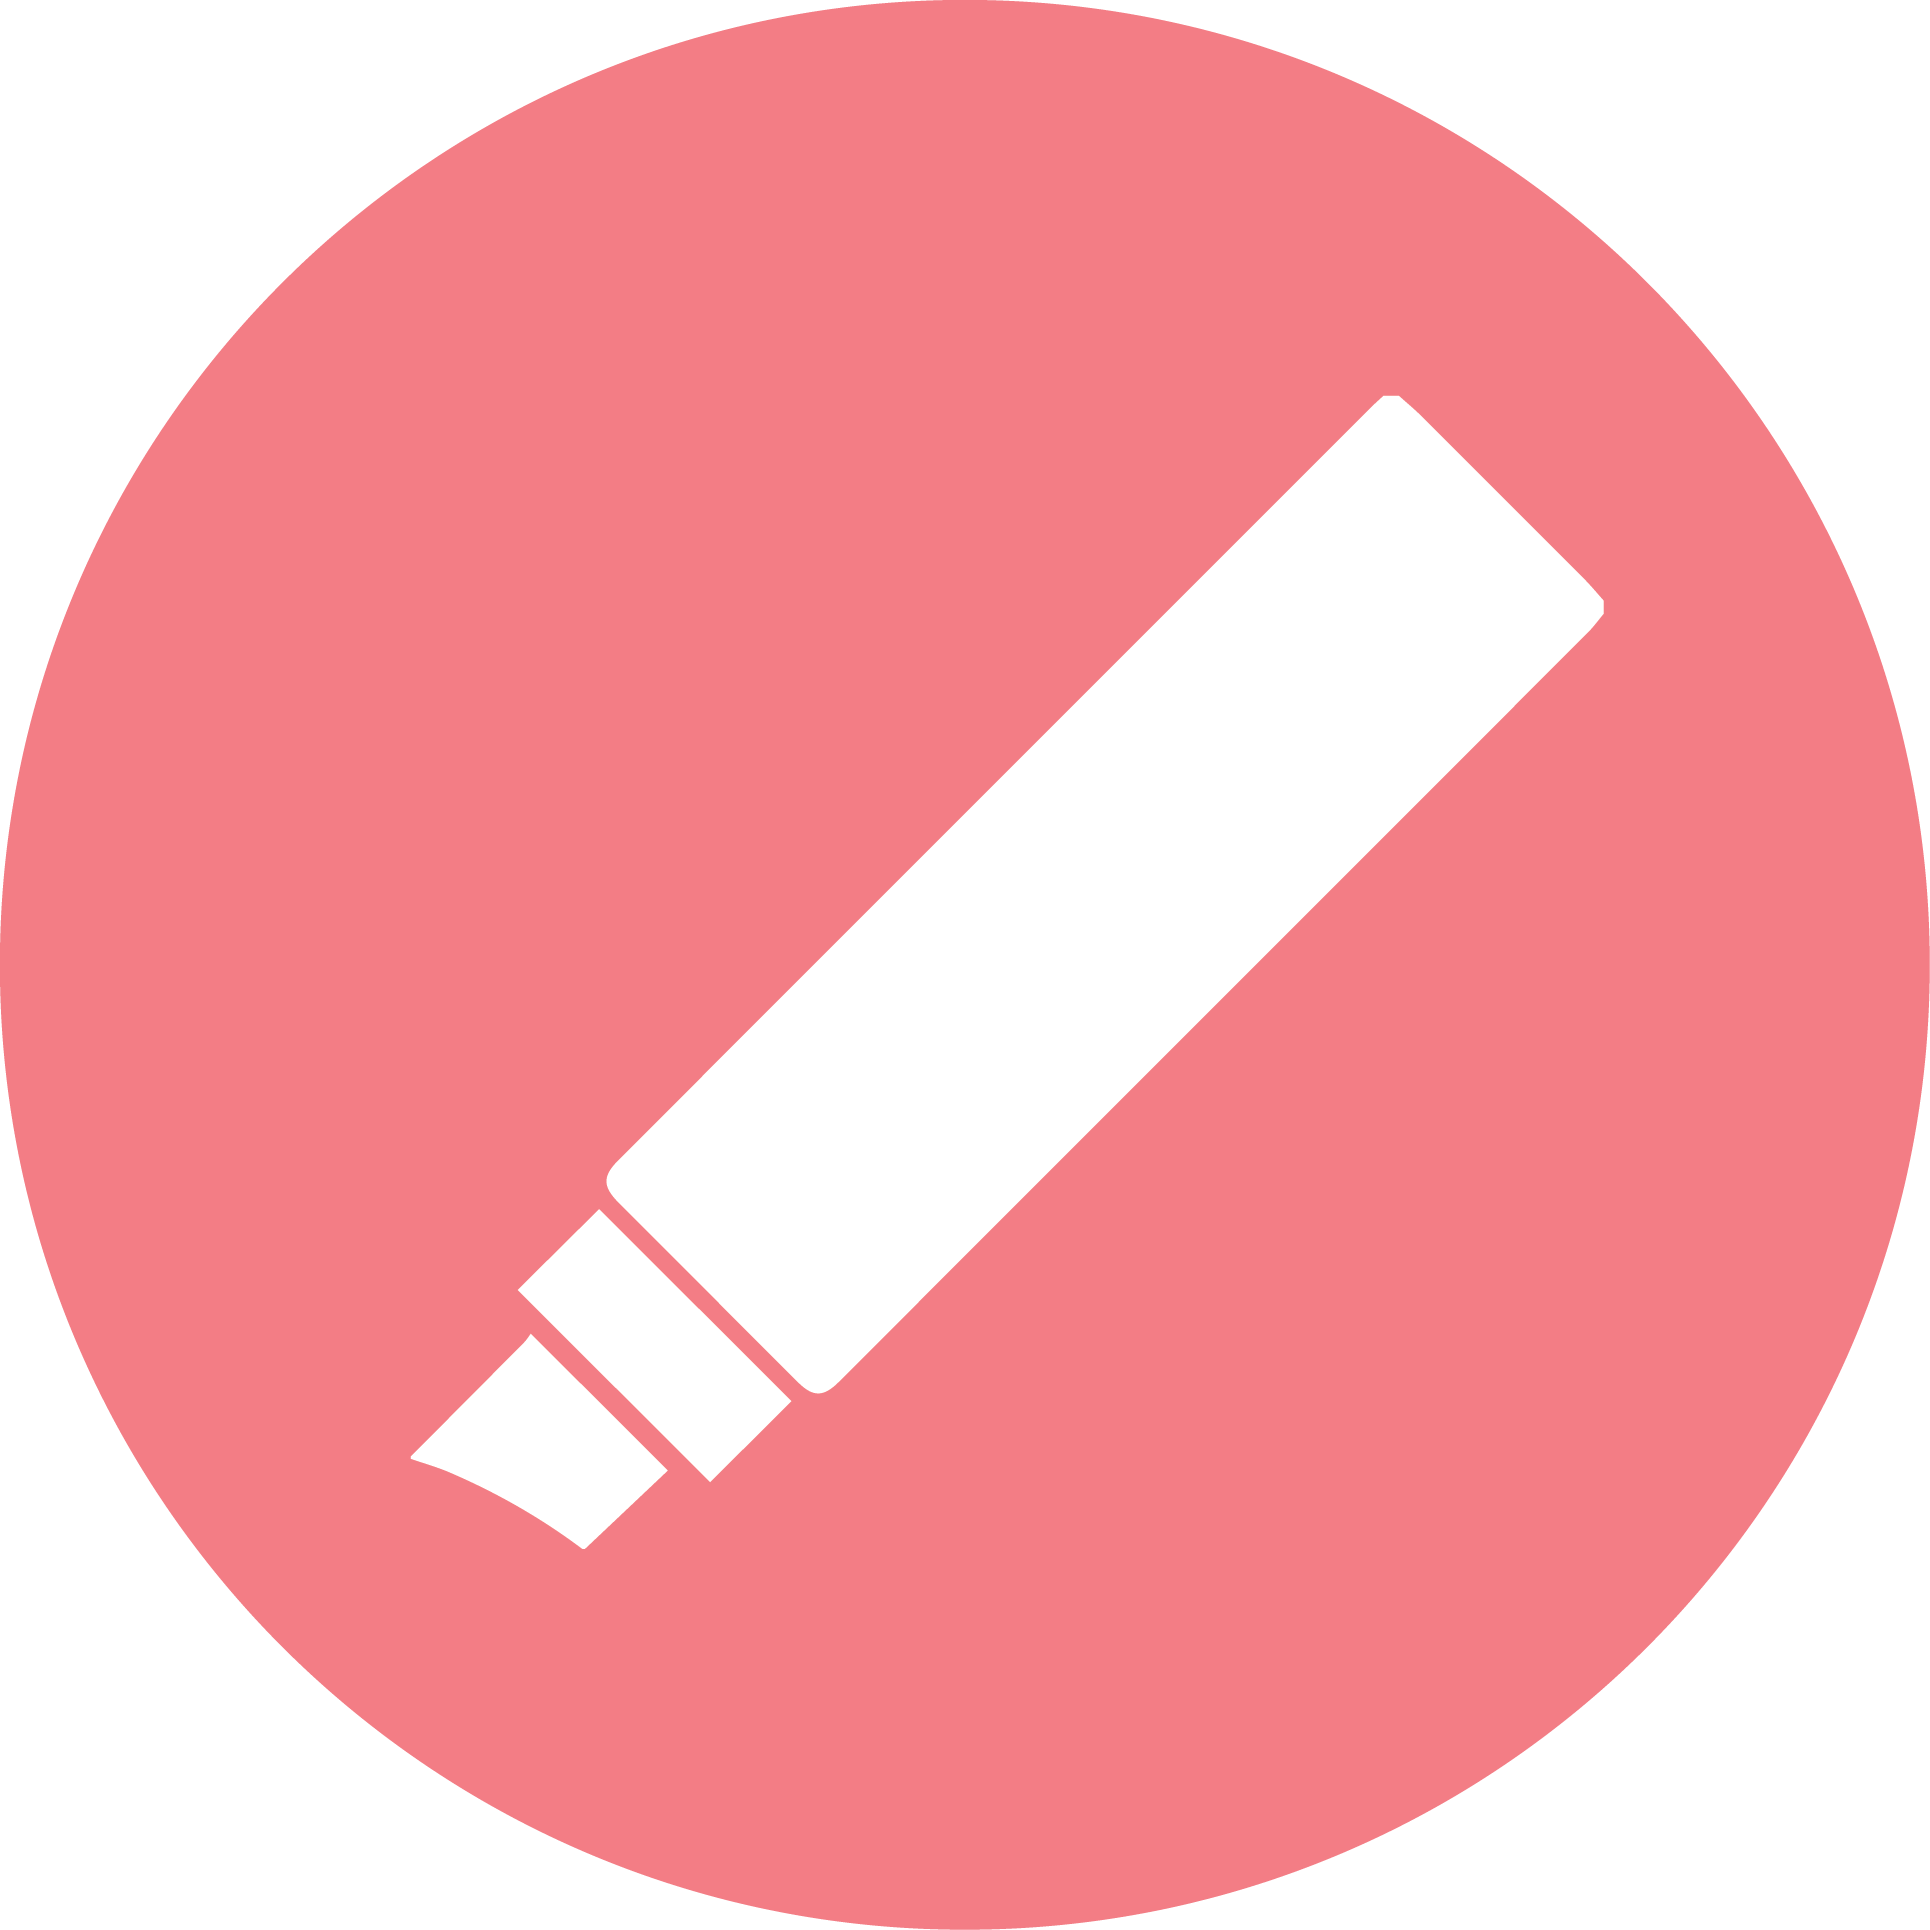 icon of highlight tool